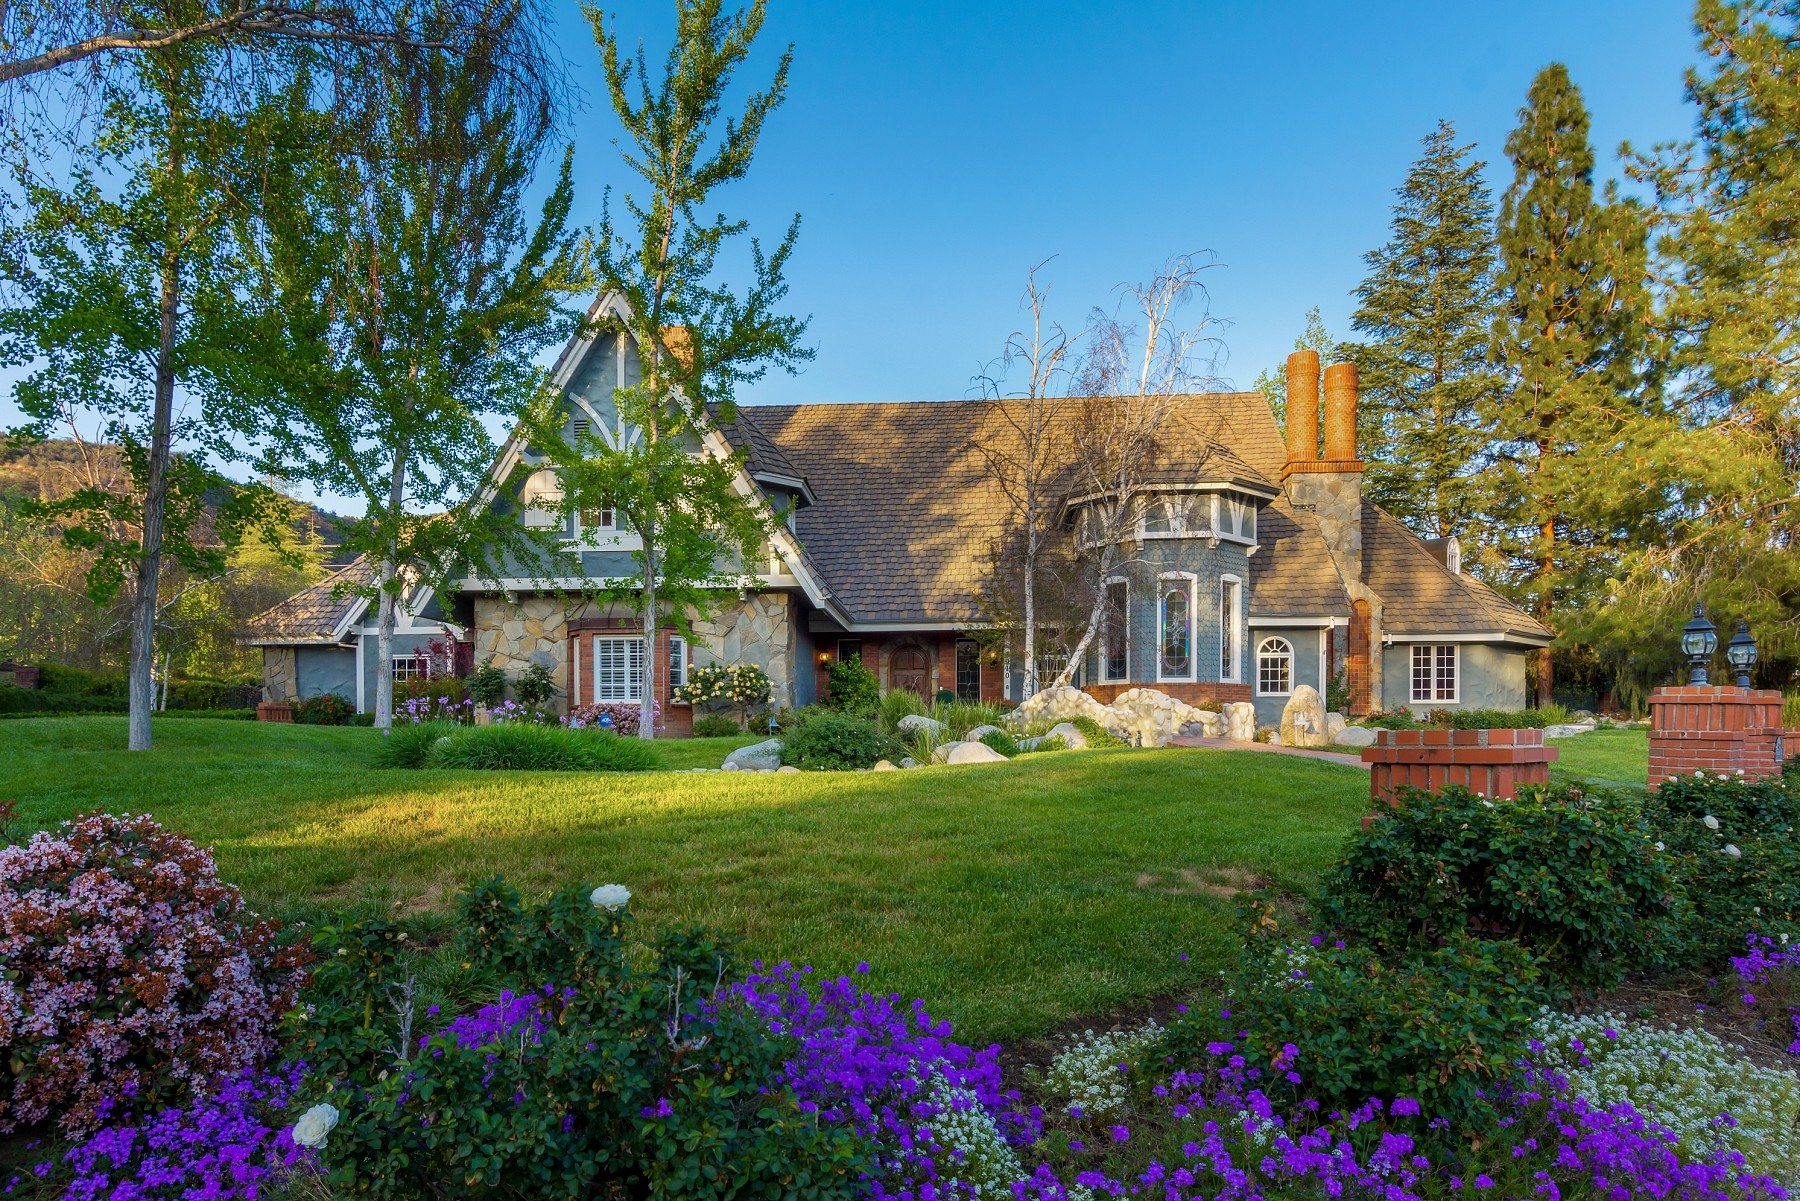 3910 French Court, Agoura Hills, CA 91301